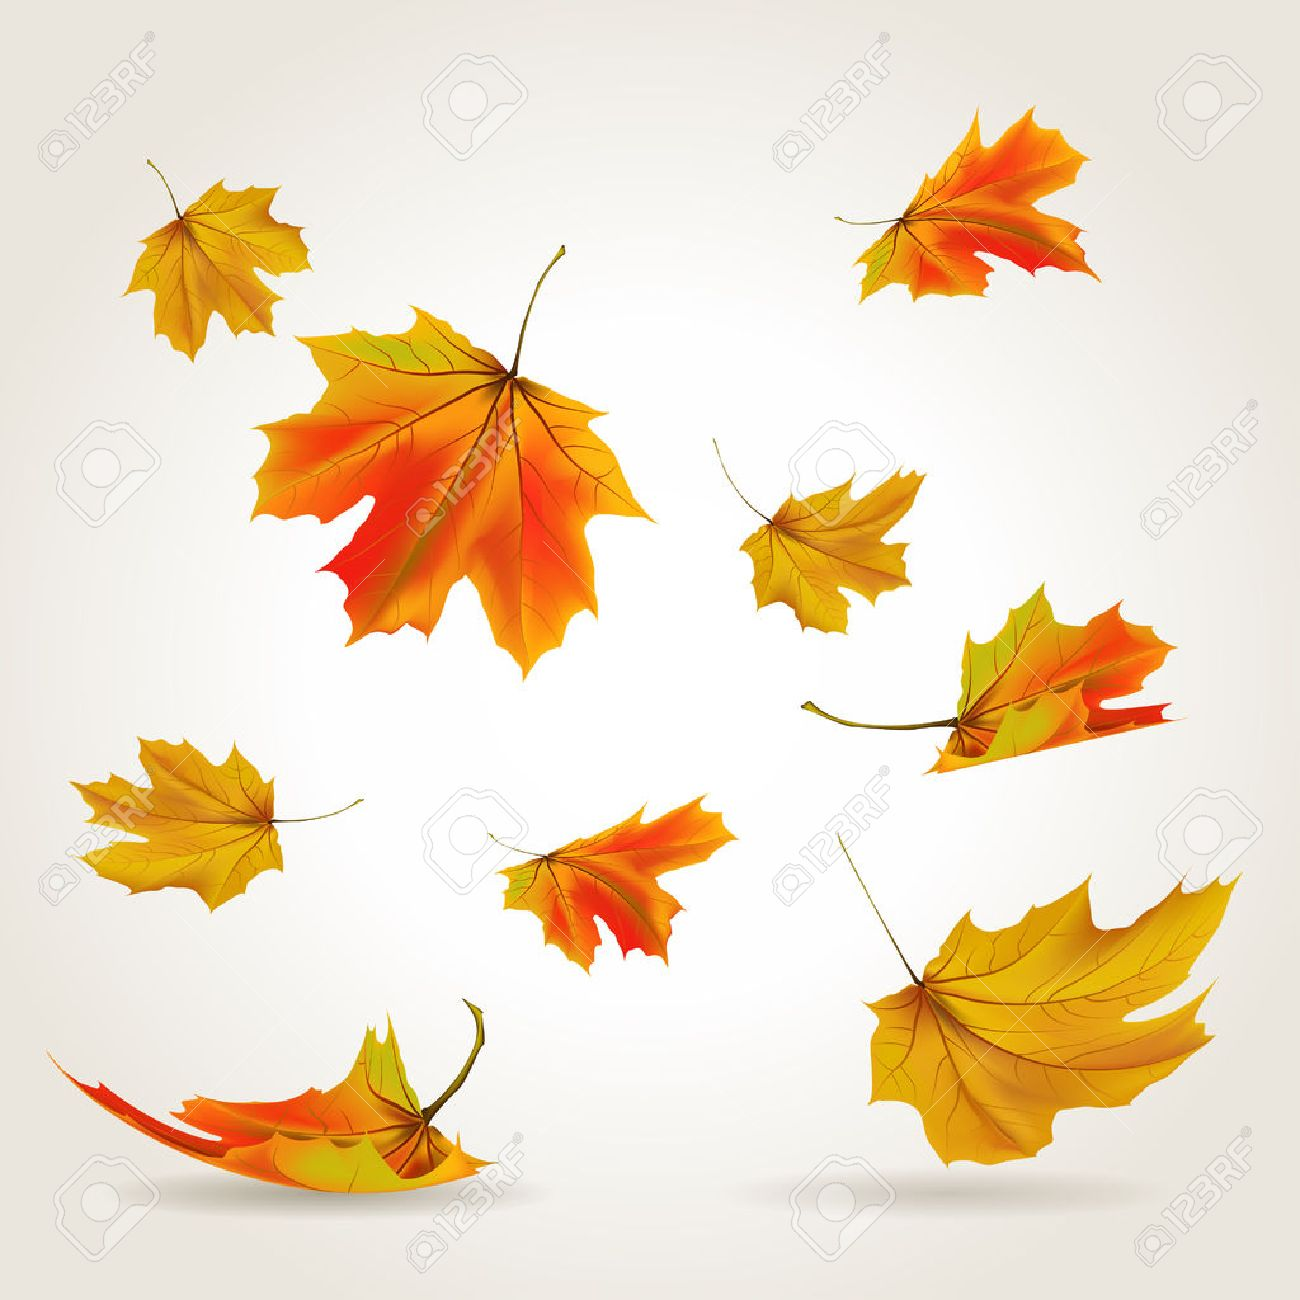 falling leaves set illustration royalty free cliparts vectors and